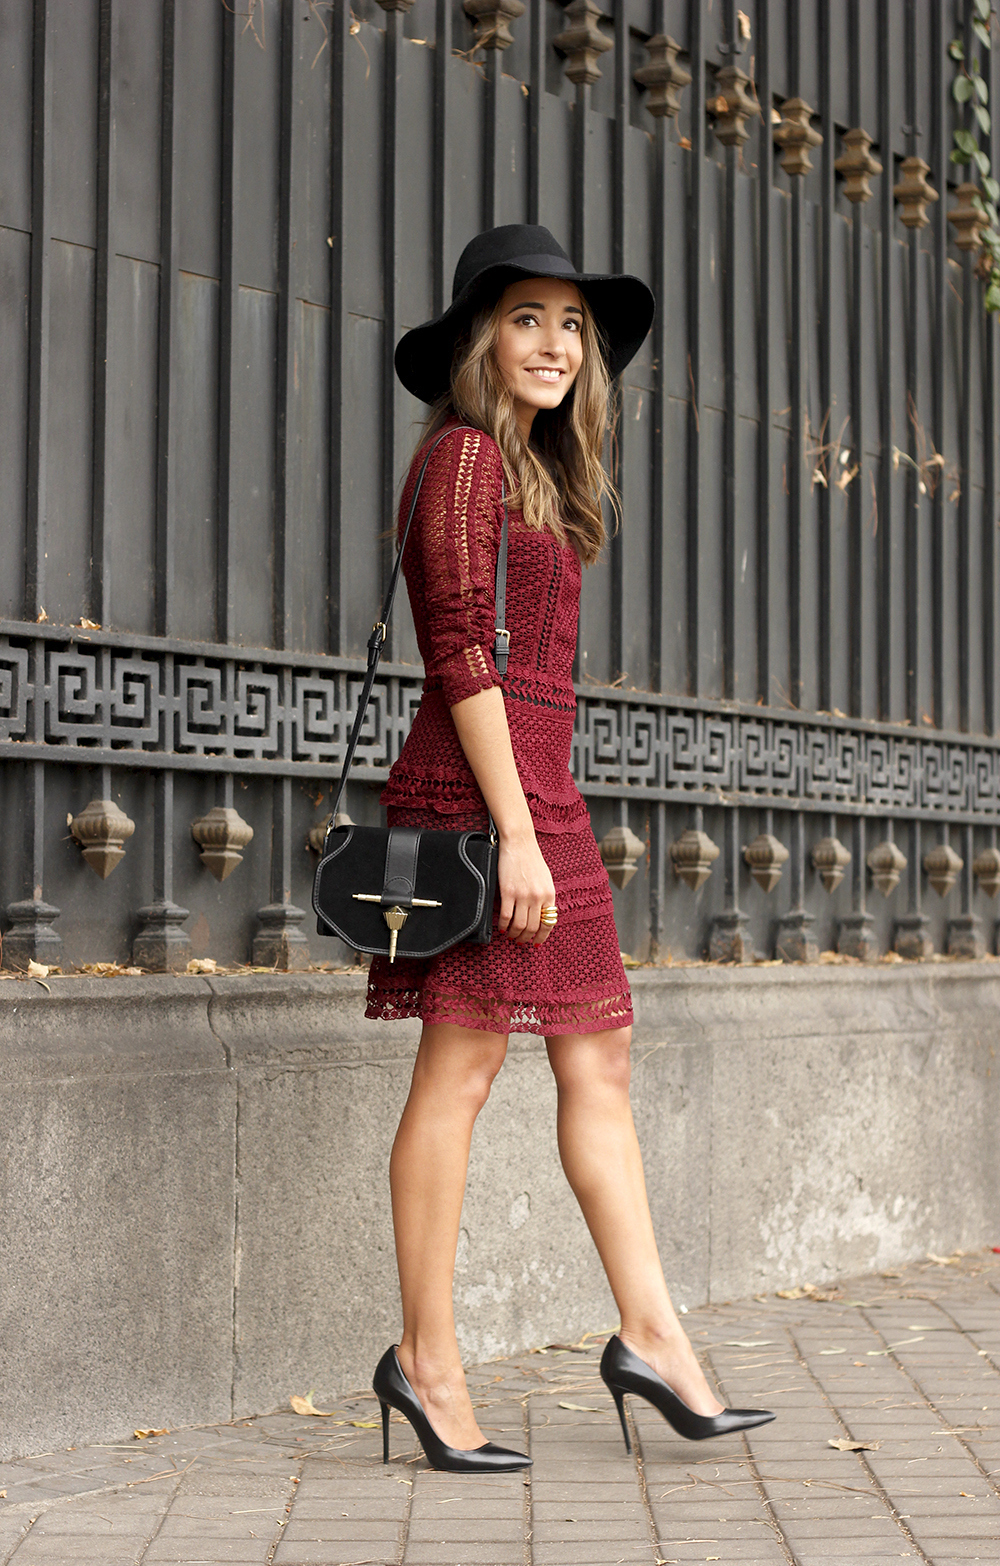 burgundy lace dress black heels hat accessories outfit fashion style10